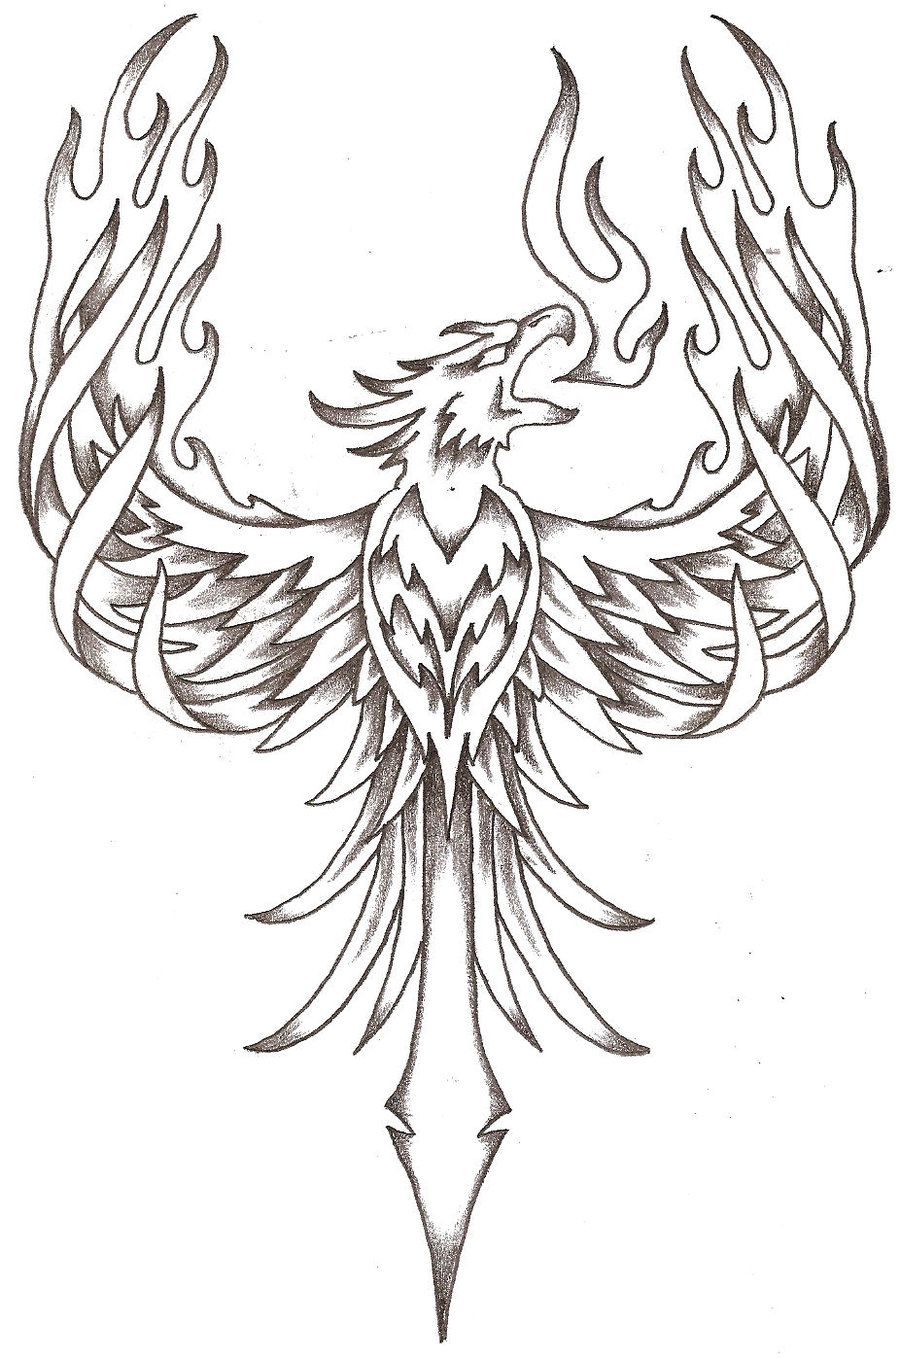 Gallery For gt Firebird Bird Drawing